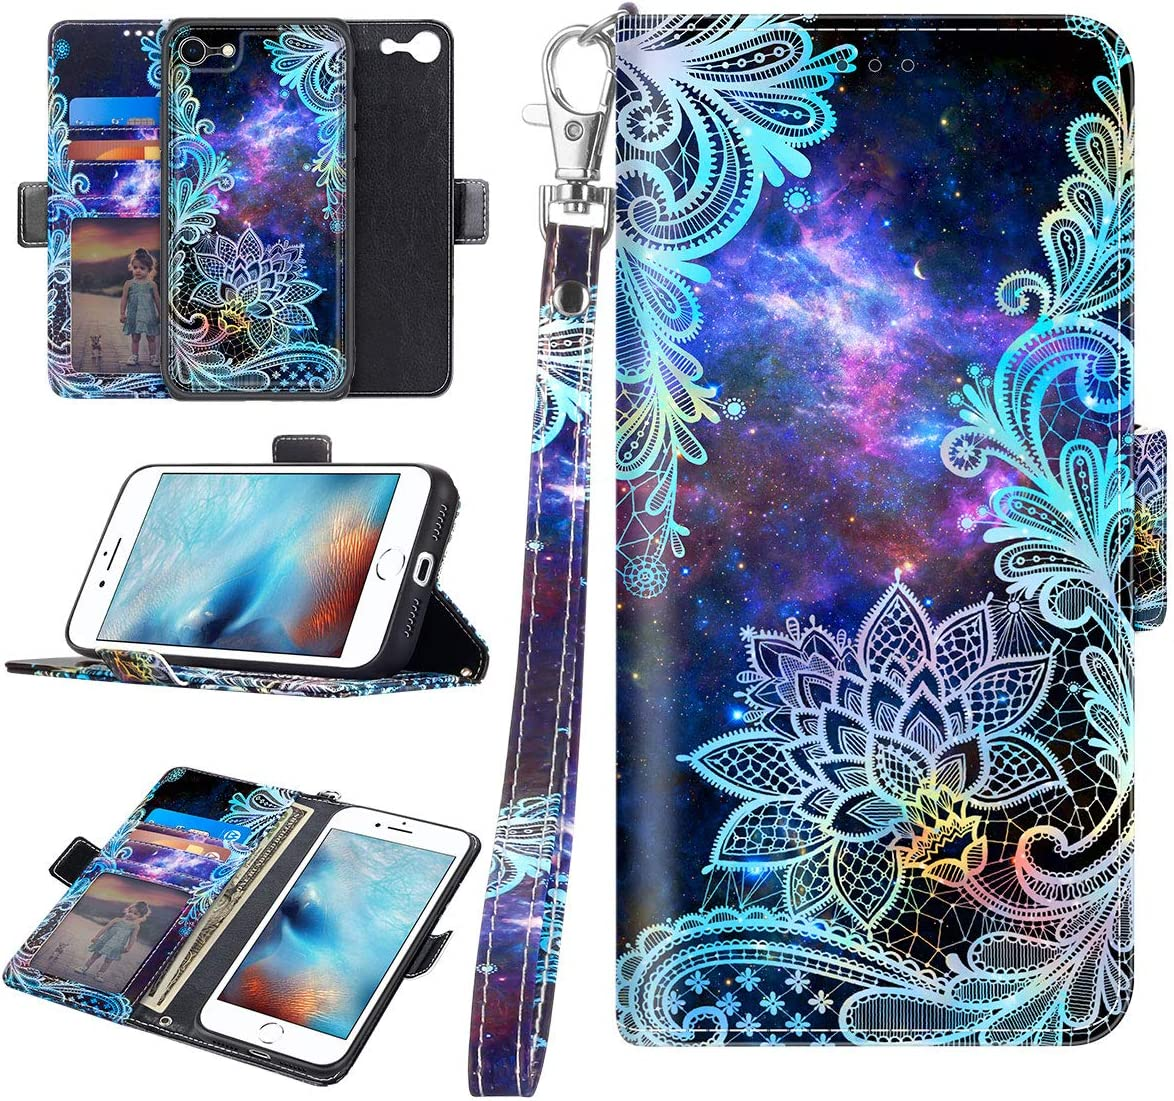 Casetego for iPhone 8 Case,iPhone 7 Case,Detachable Magnetic Wallet Case PU Leather Full Body Protective Case with Credit Card Holders, Wrist Strap for Apple iPhone 8/7,Blue Mandala